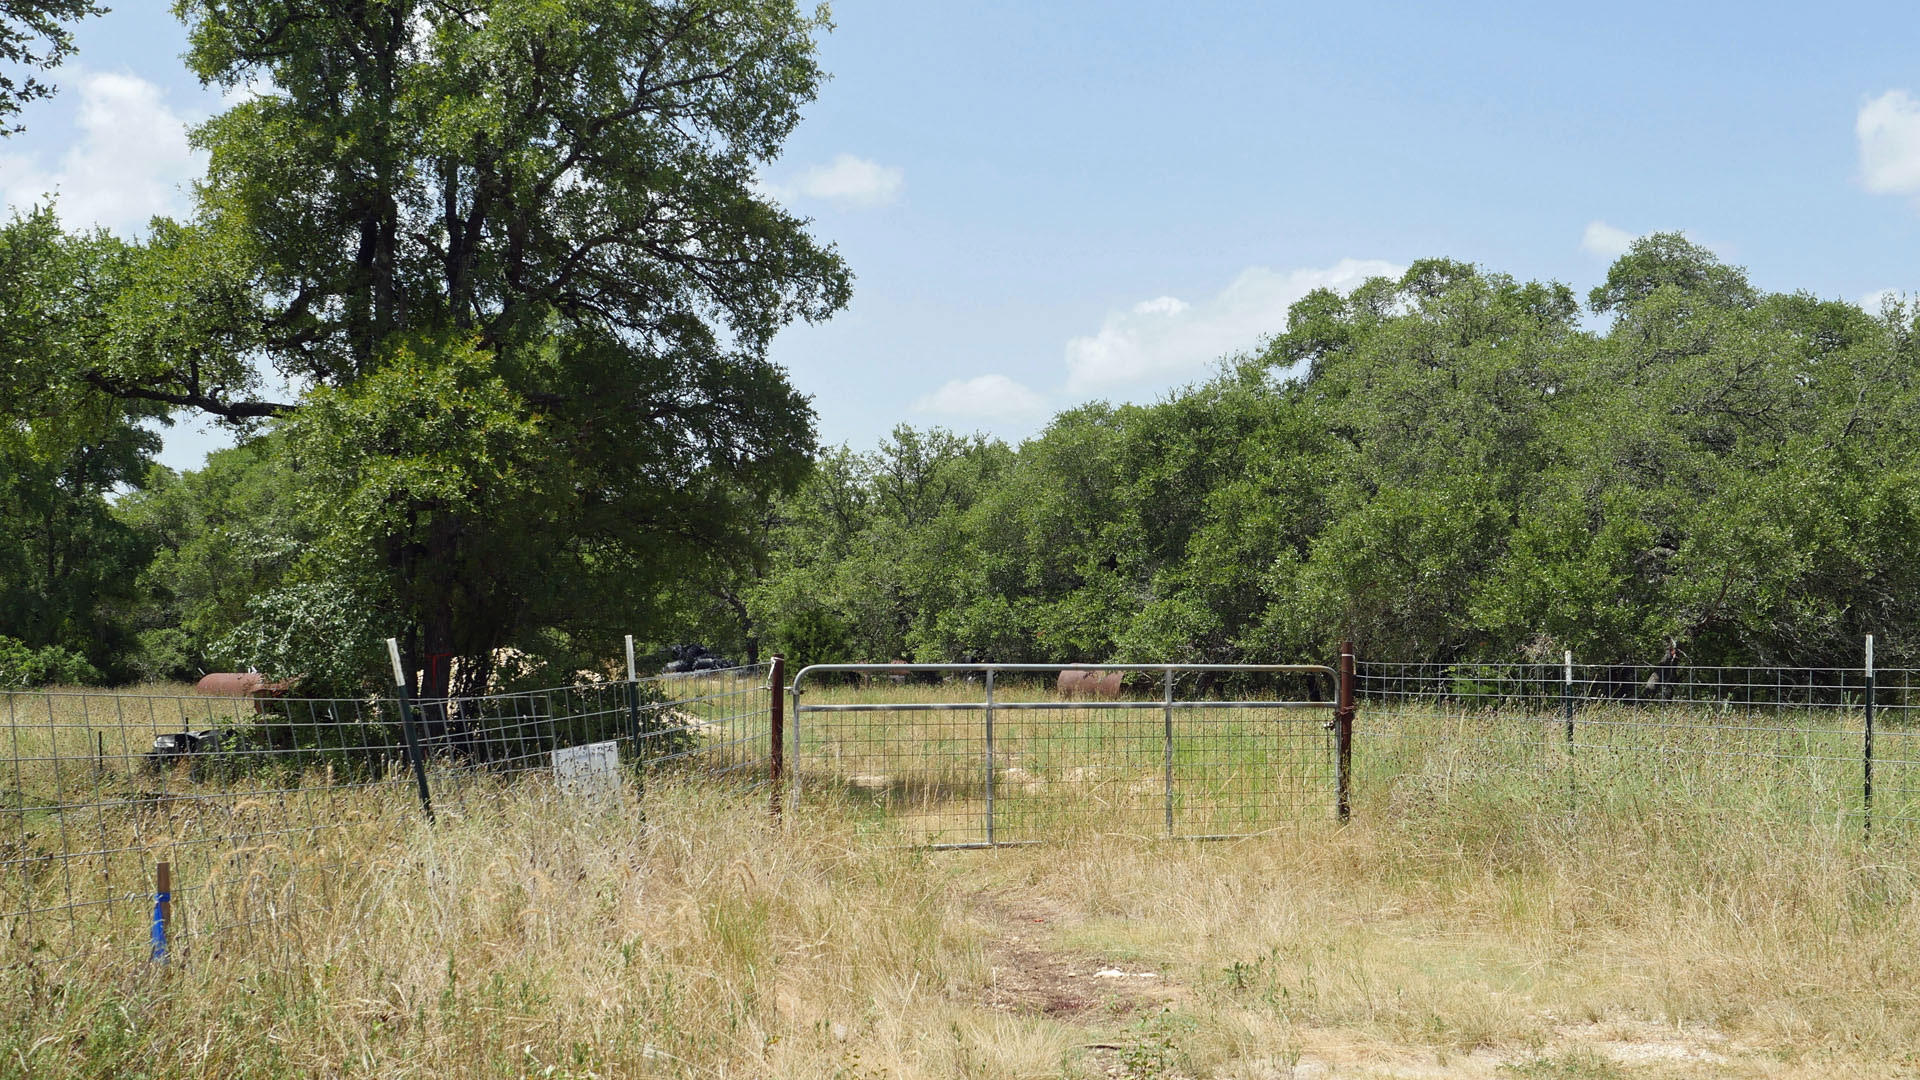 South Comal Water Supply Company stopped Pipeline on South Side of Ammann Road